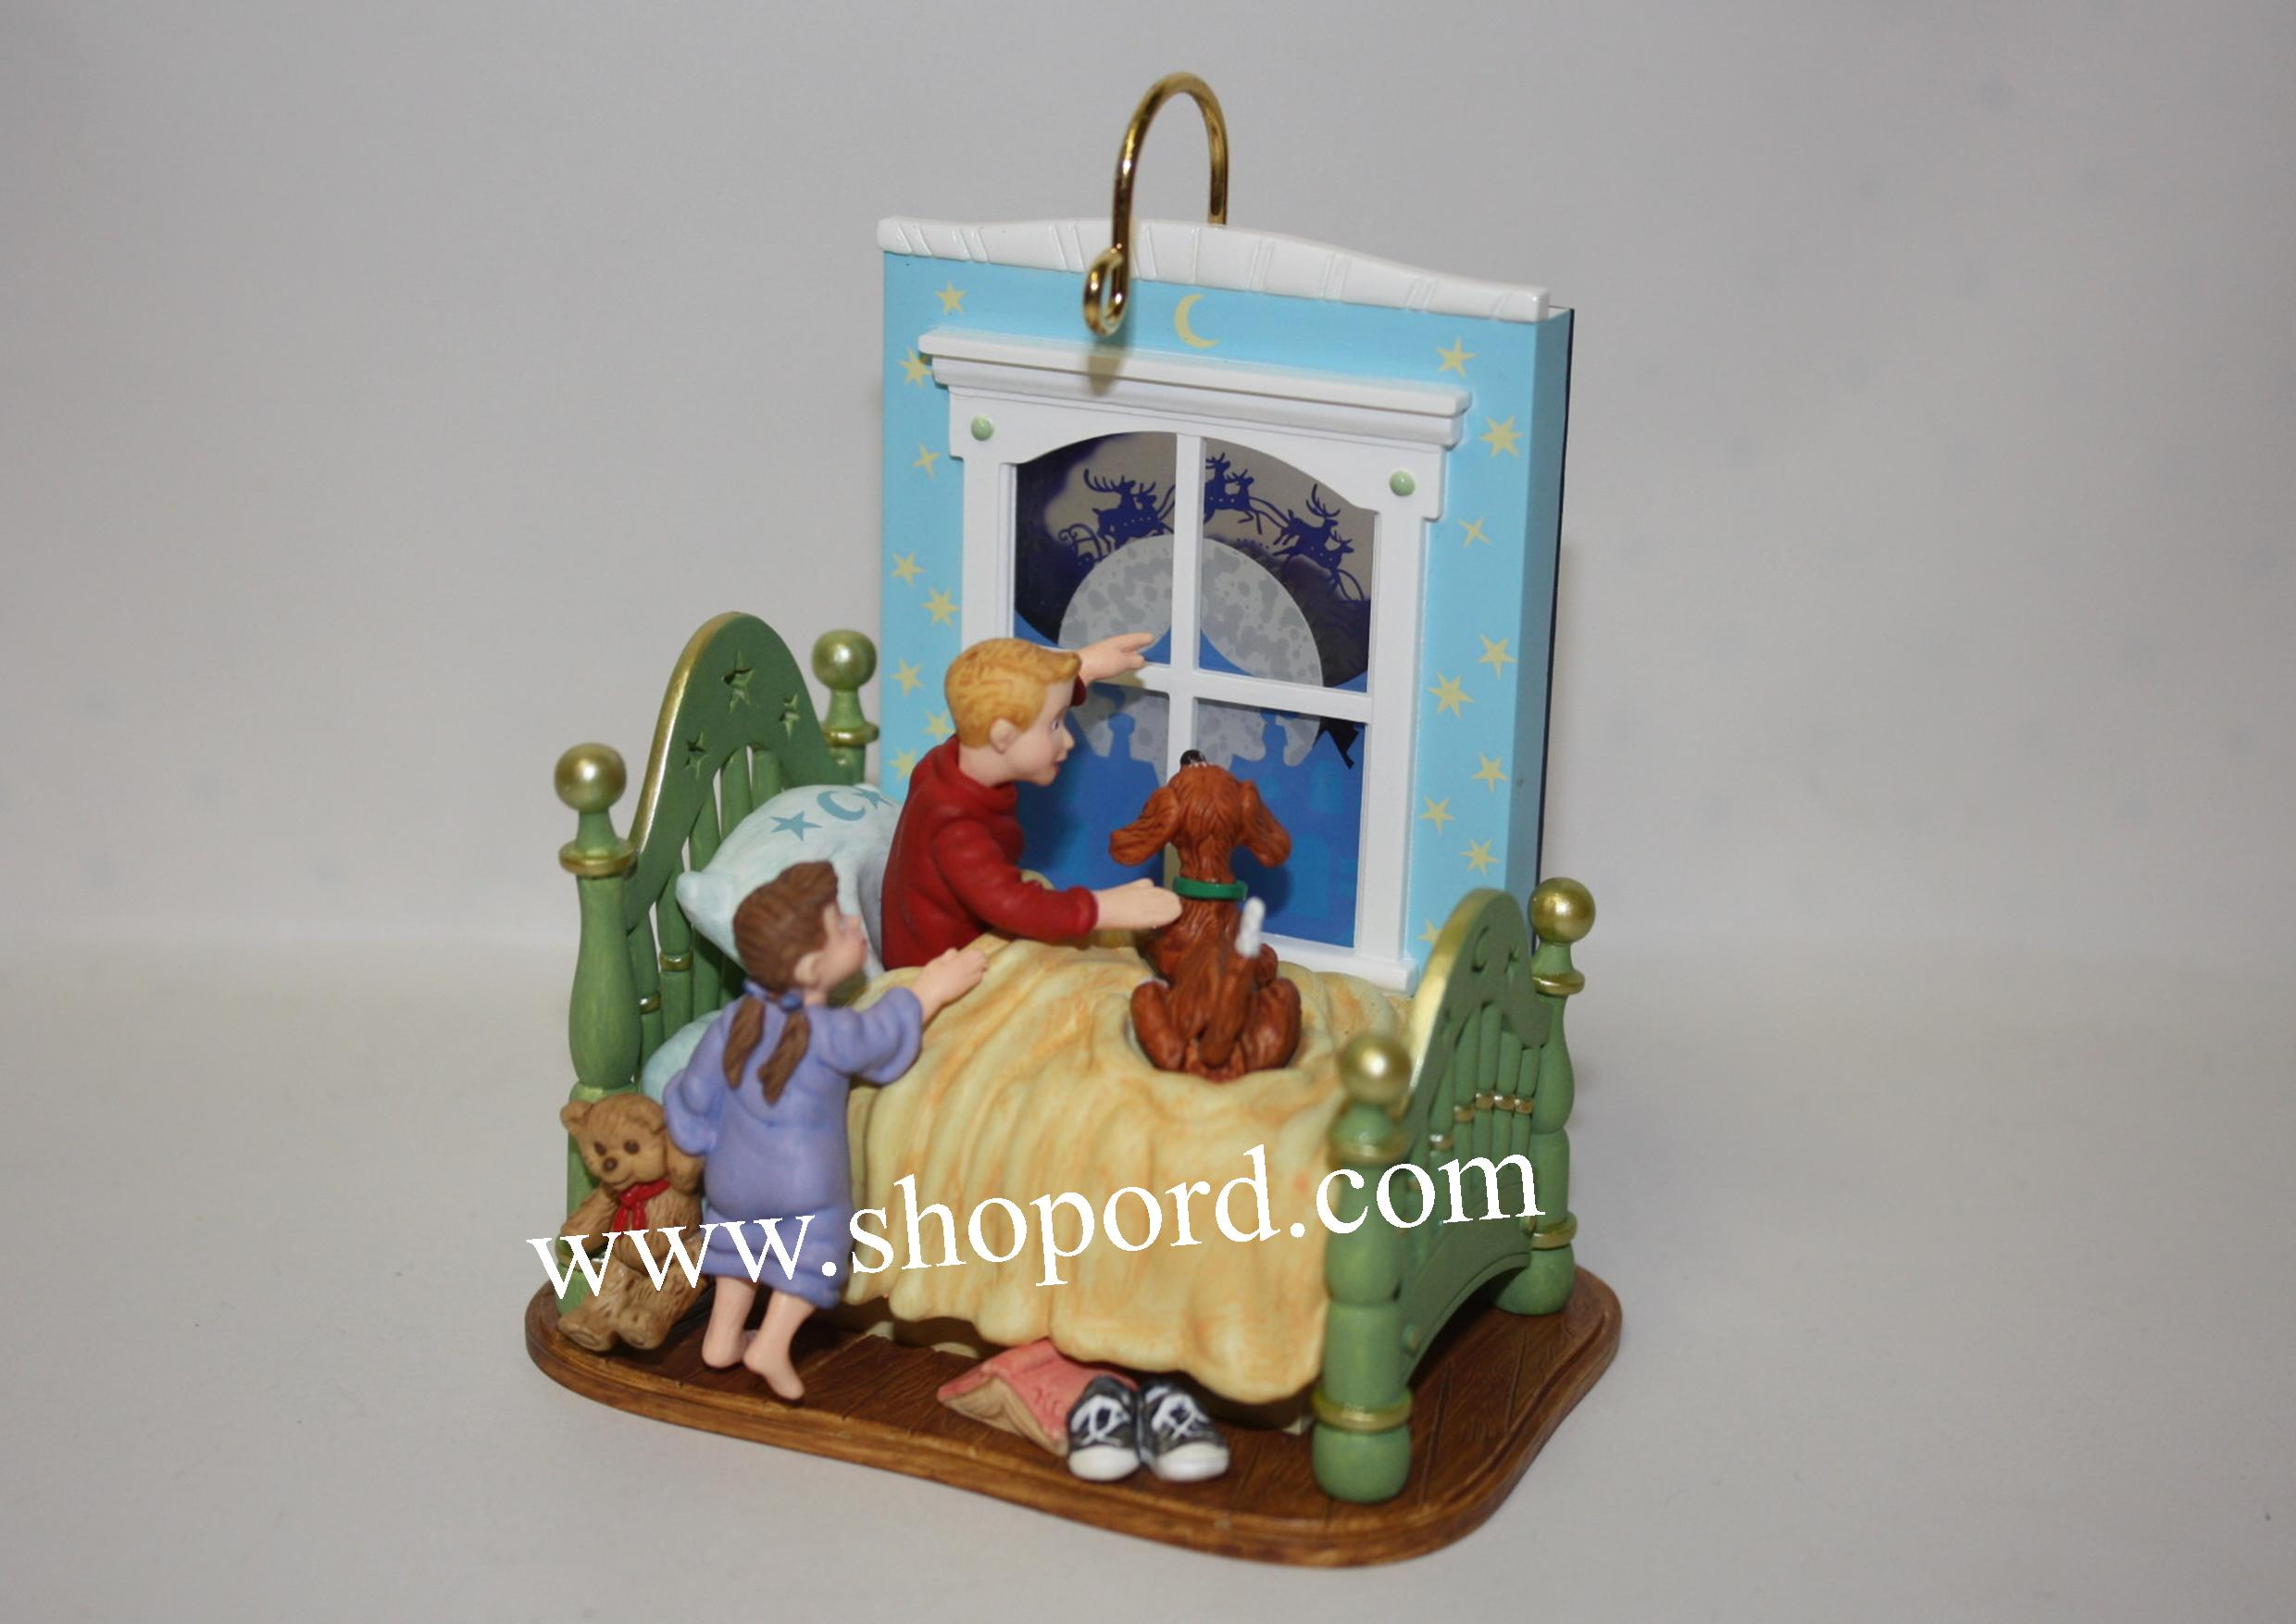 Hallmark 2002 A Time To Believe Ornament Windup QX8506